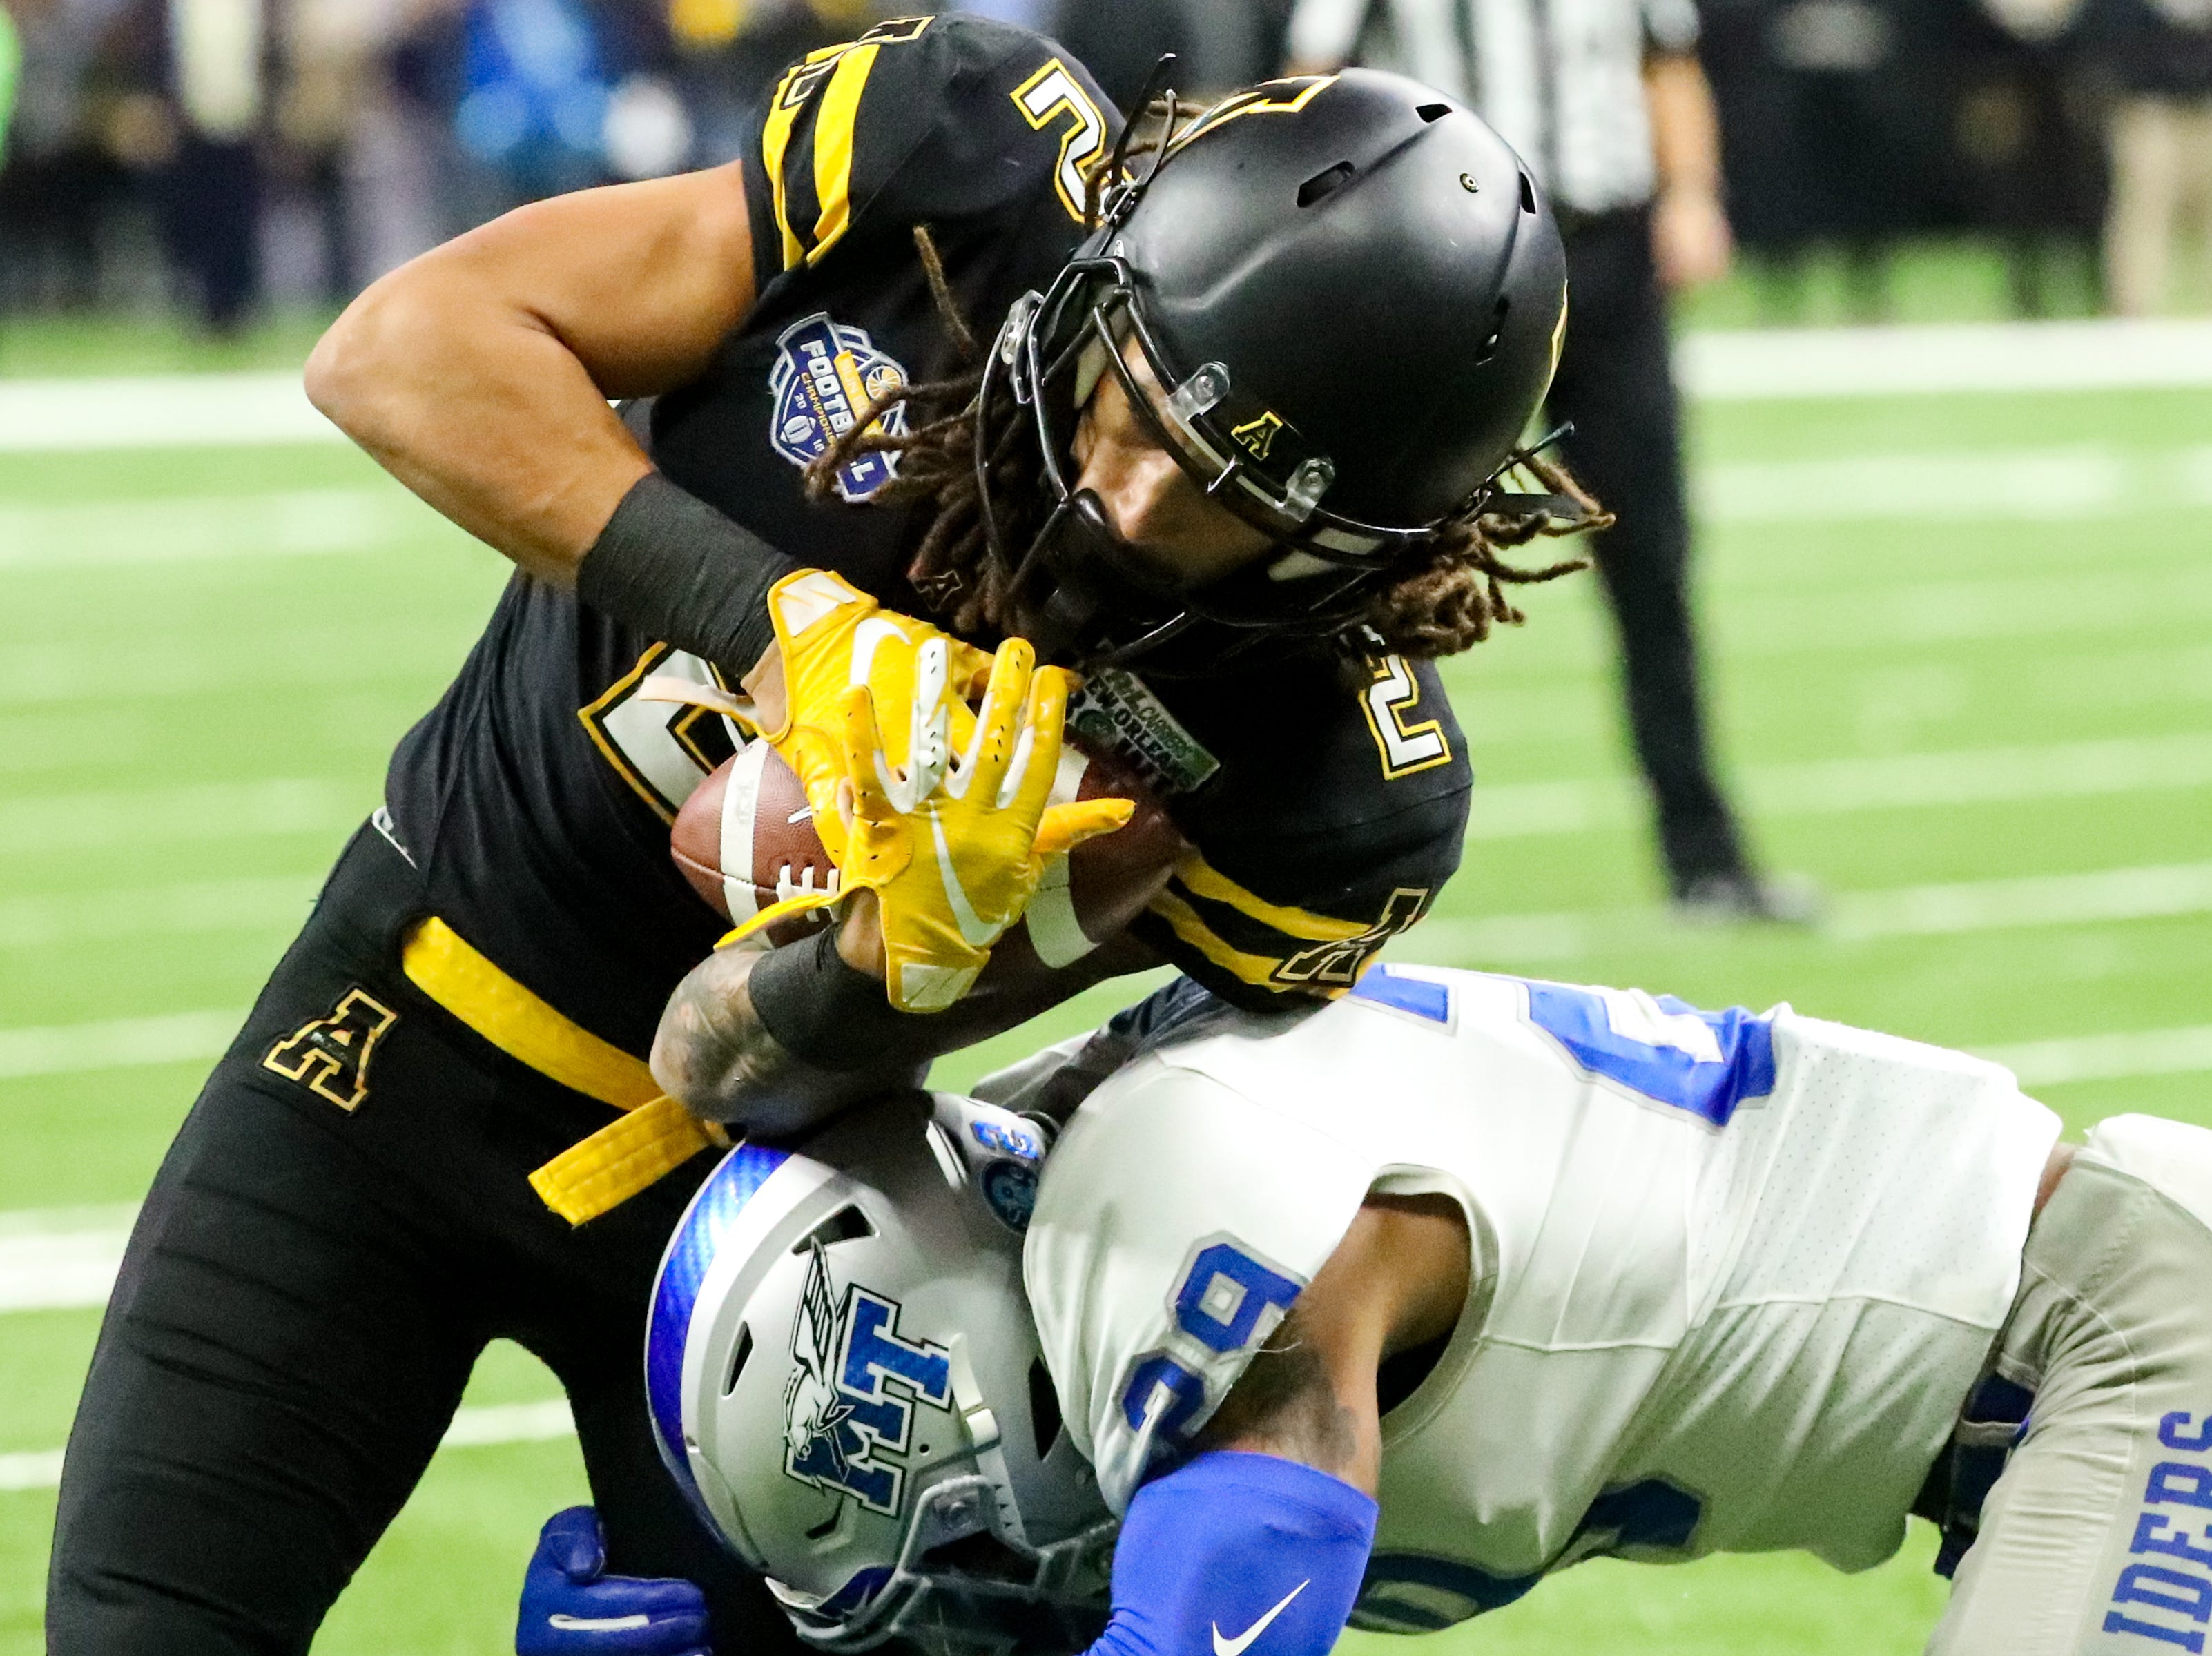 Appalachian State Mountaineers wide receiver Corey Xavier Sutton (2) is taken down by Middle Tennessee Blue Raiders cornerback Darryl Randolph (29) during the first half at the Mercedes-Benz Superdome Saturday, Dec. 15, 2018, in New Orleans, La.